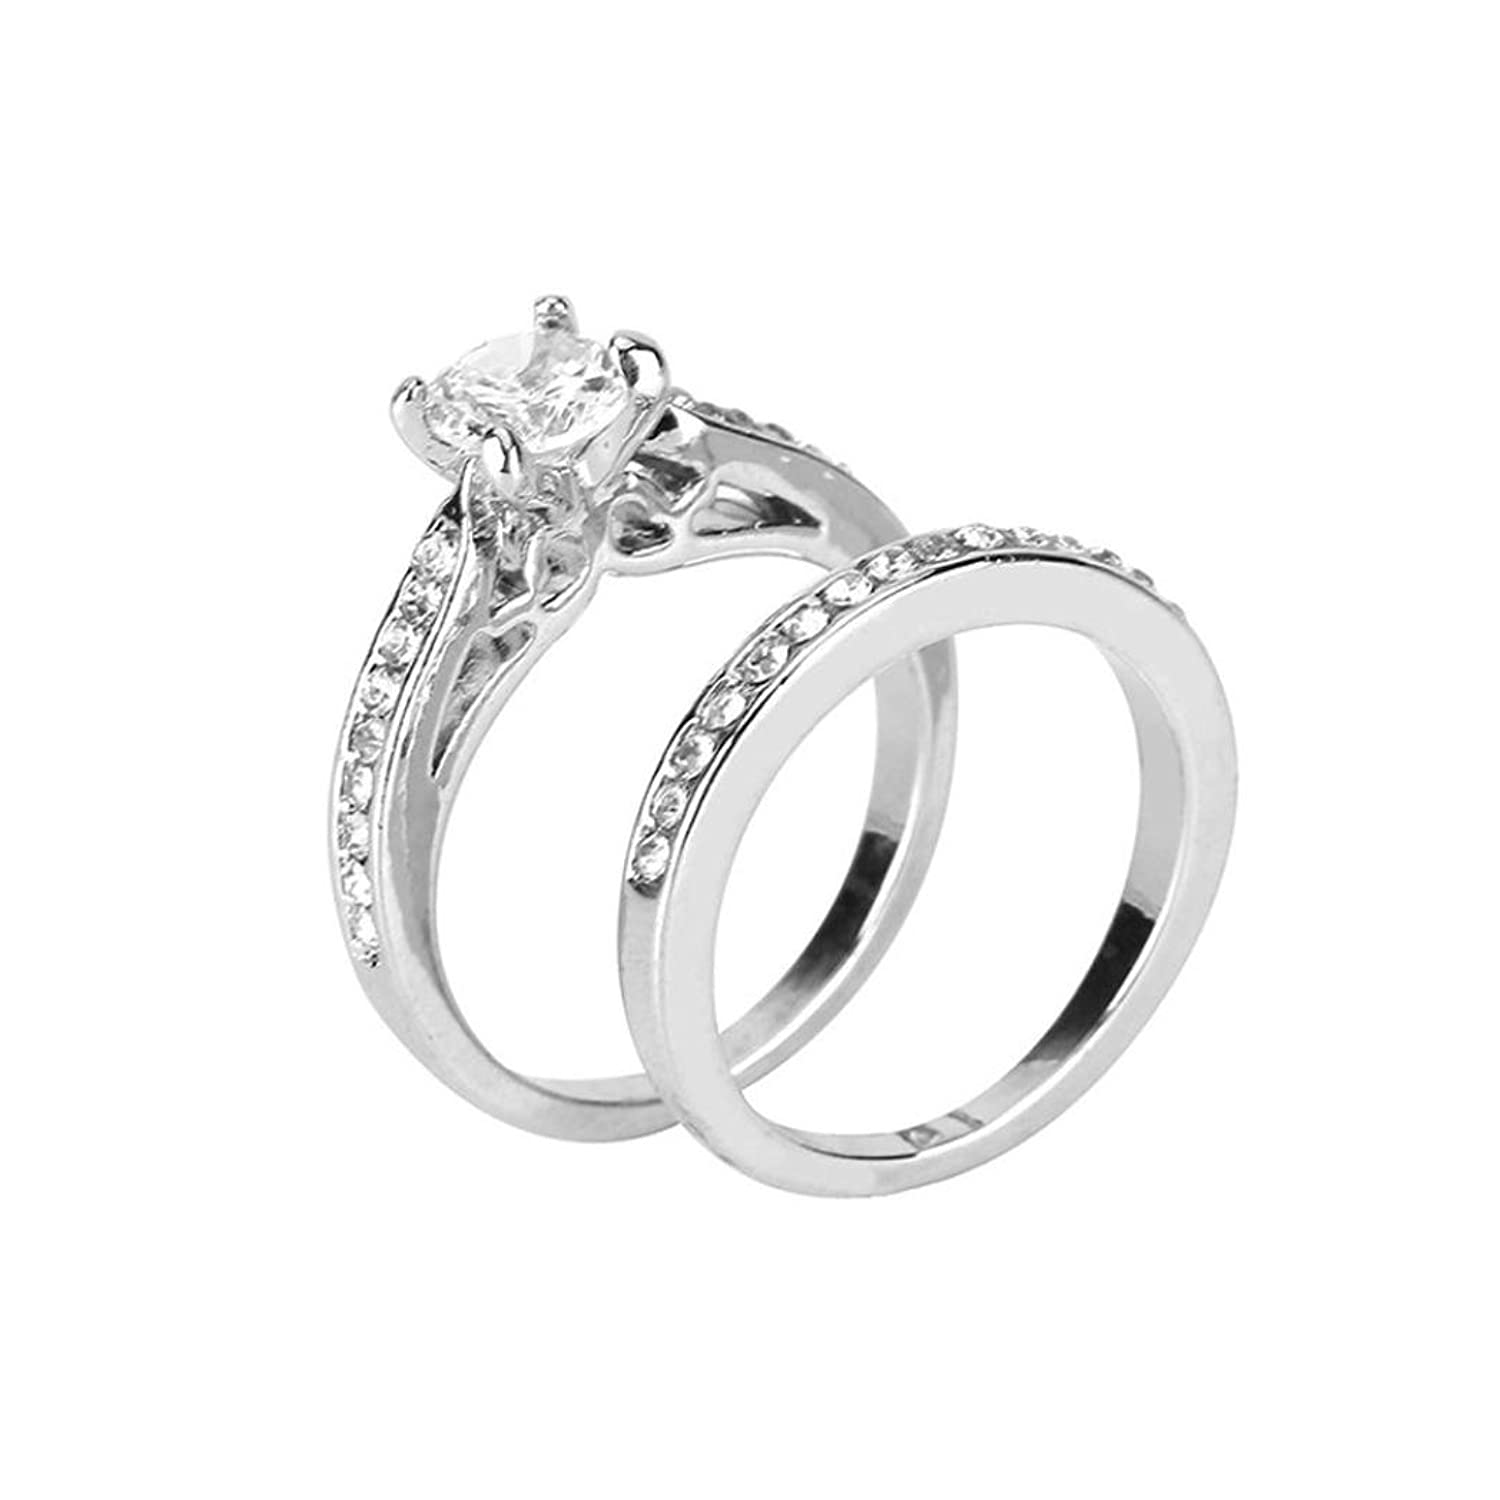 1 Pair Couple Zircon Wedding Ring Couple Jewelry Gift by Botrong